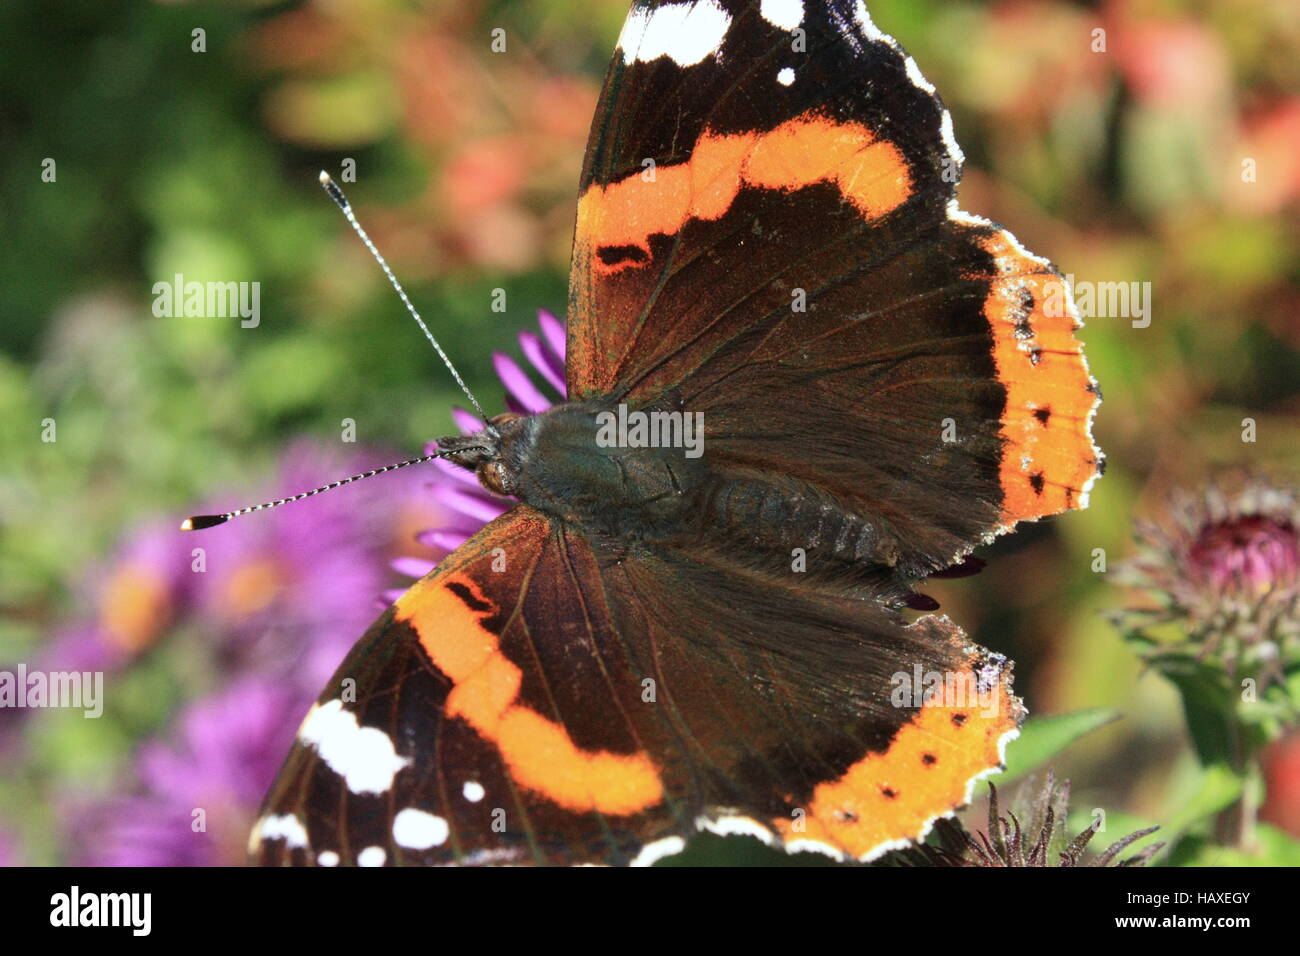 Admiral, Schmetterling - Stock Image